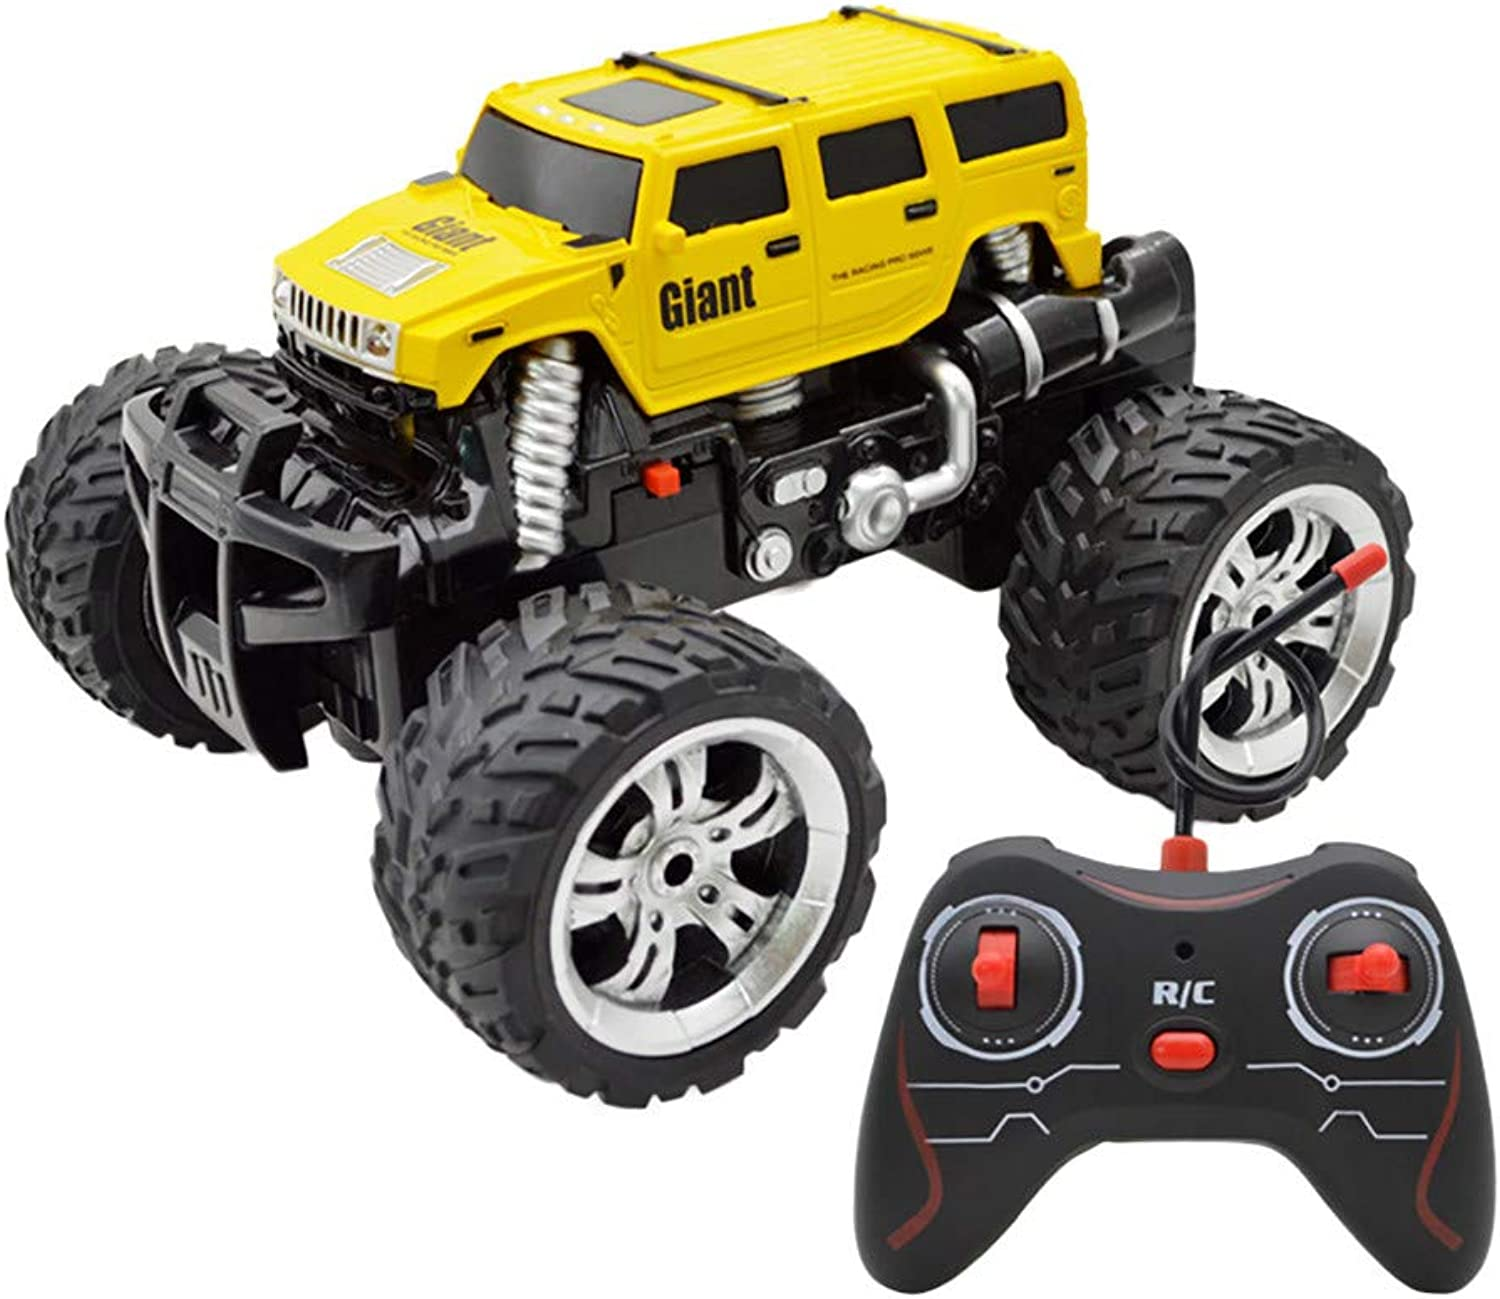 Generic RC Car Off-Road Vehicle Stunt Kid Remote Control Electric Toy 360 redating D